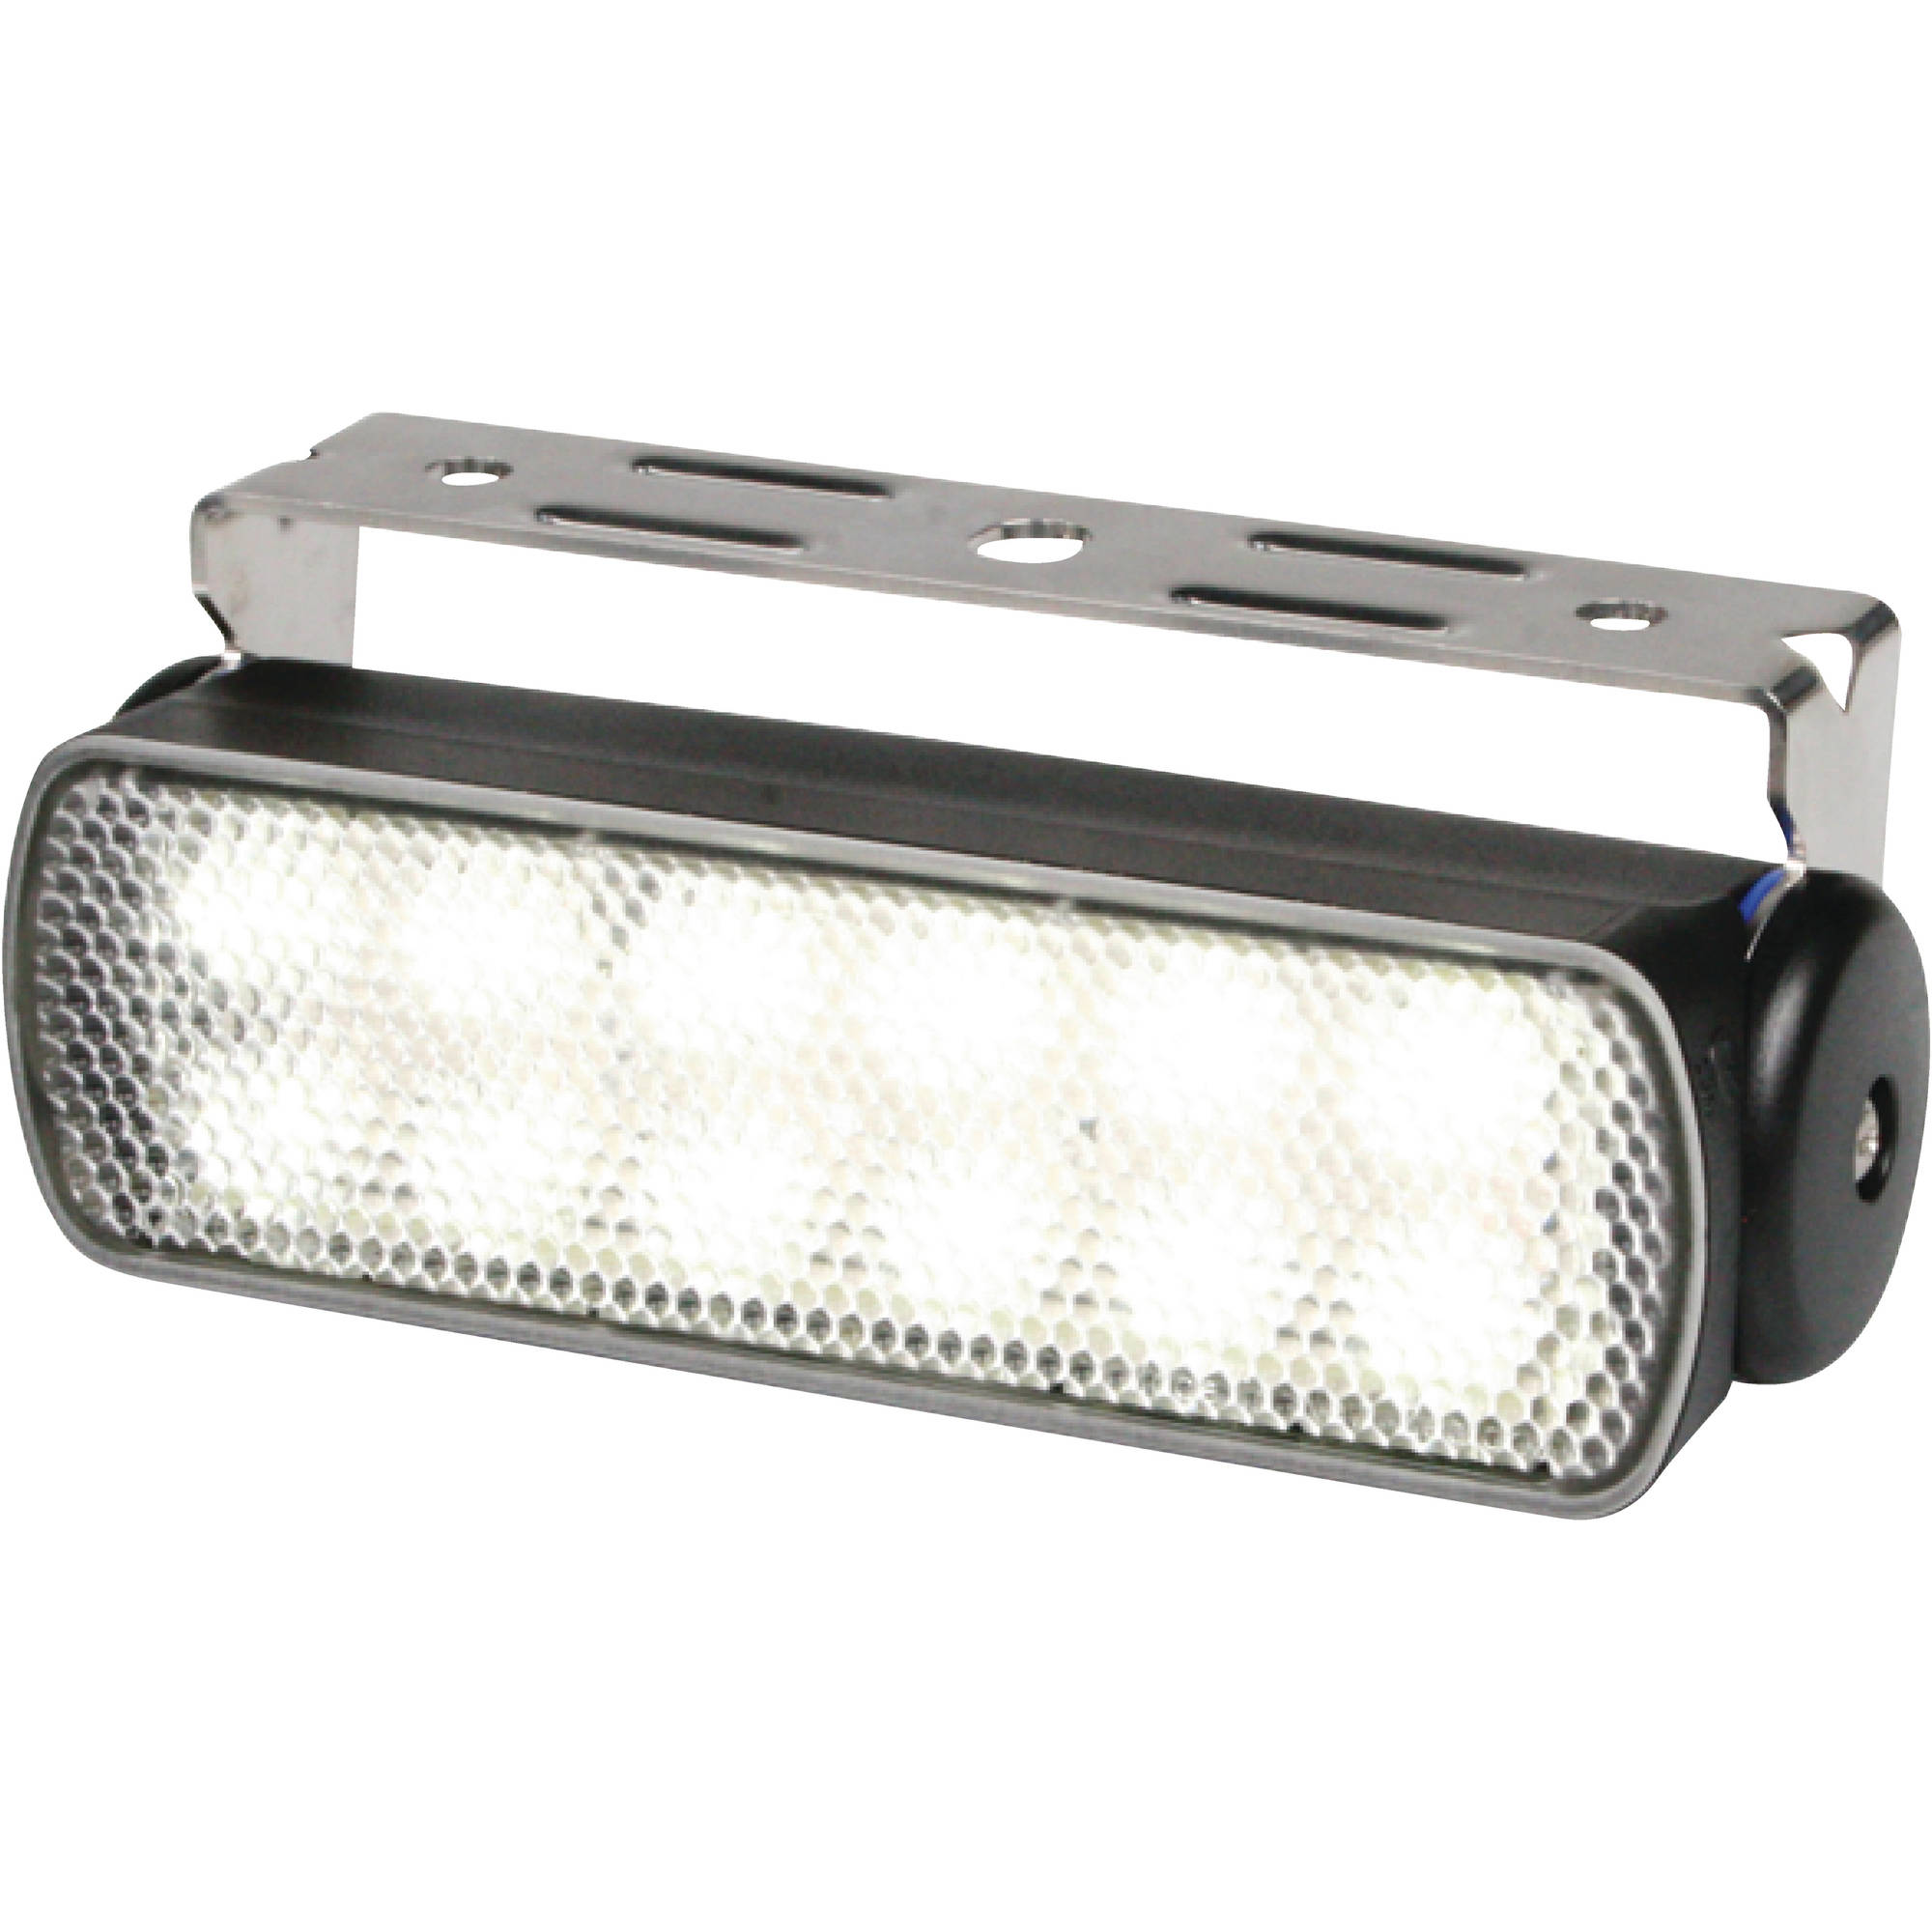 Hella Sea Hawk 9-33V DC White Light LED Floodlight, Spread